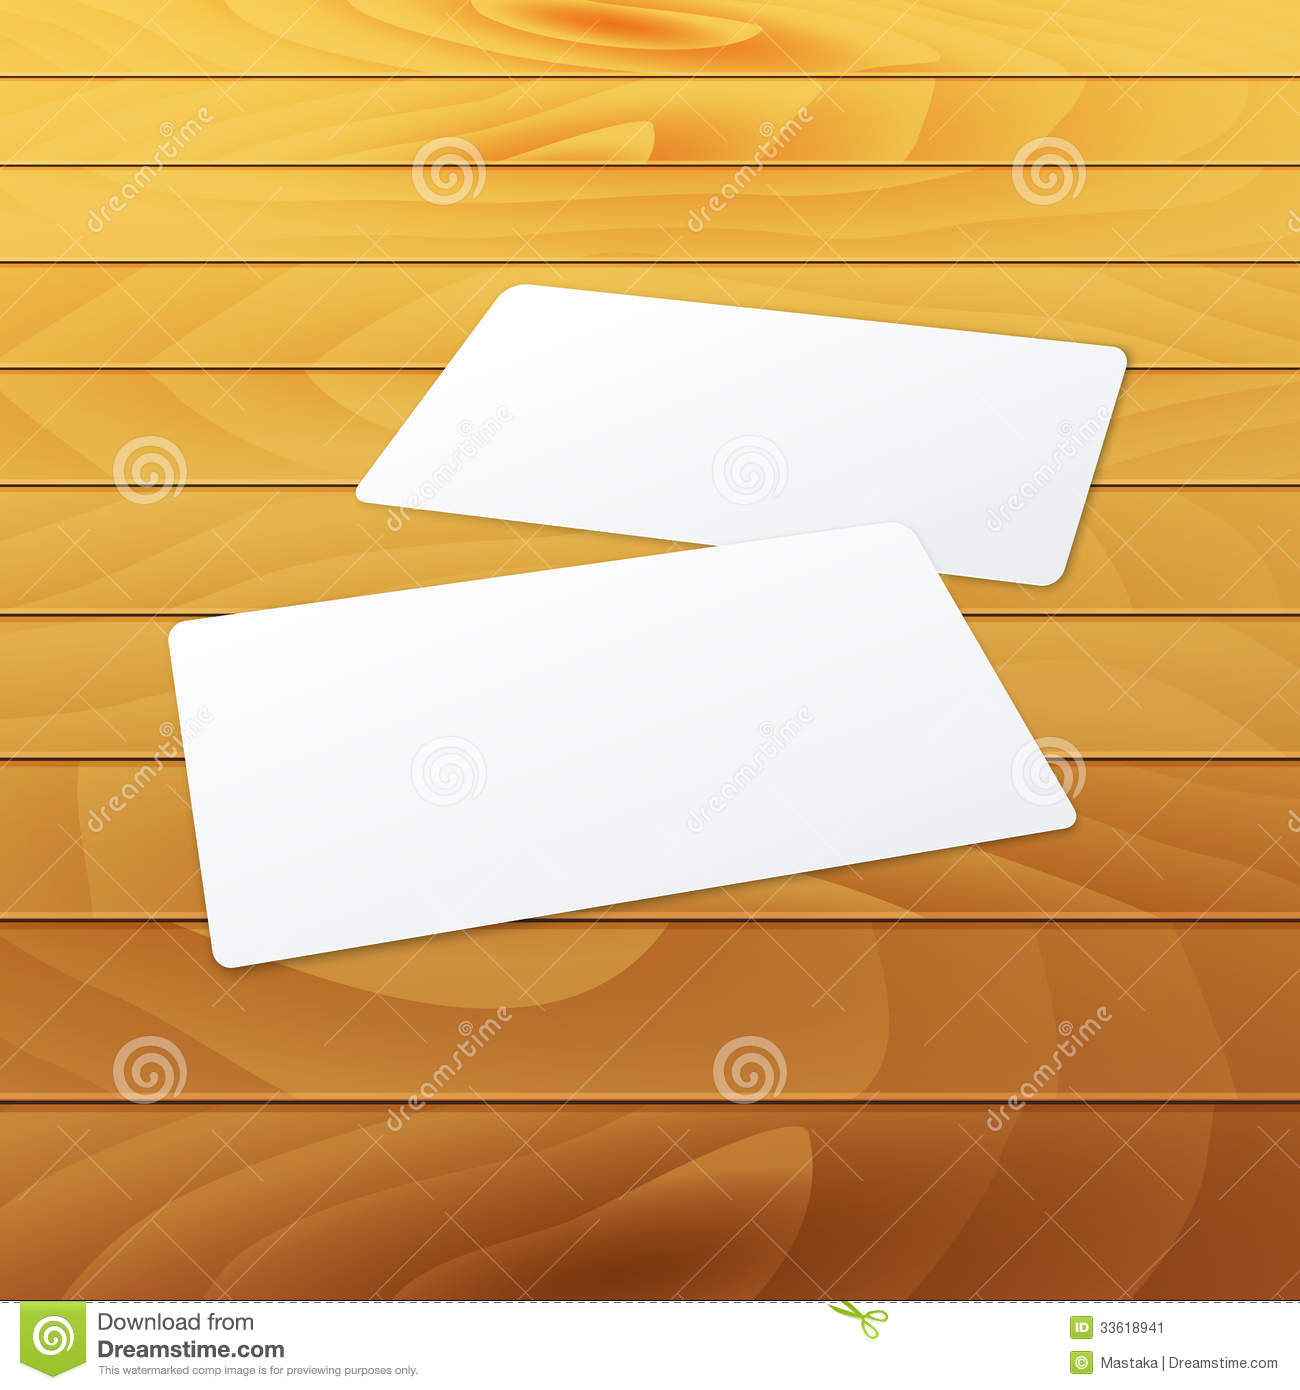 Delighted Blank Metal Business Cards Images - Business Card Ideas ...